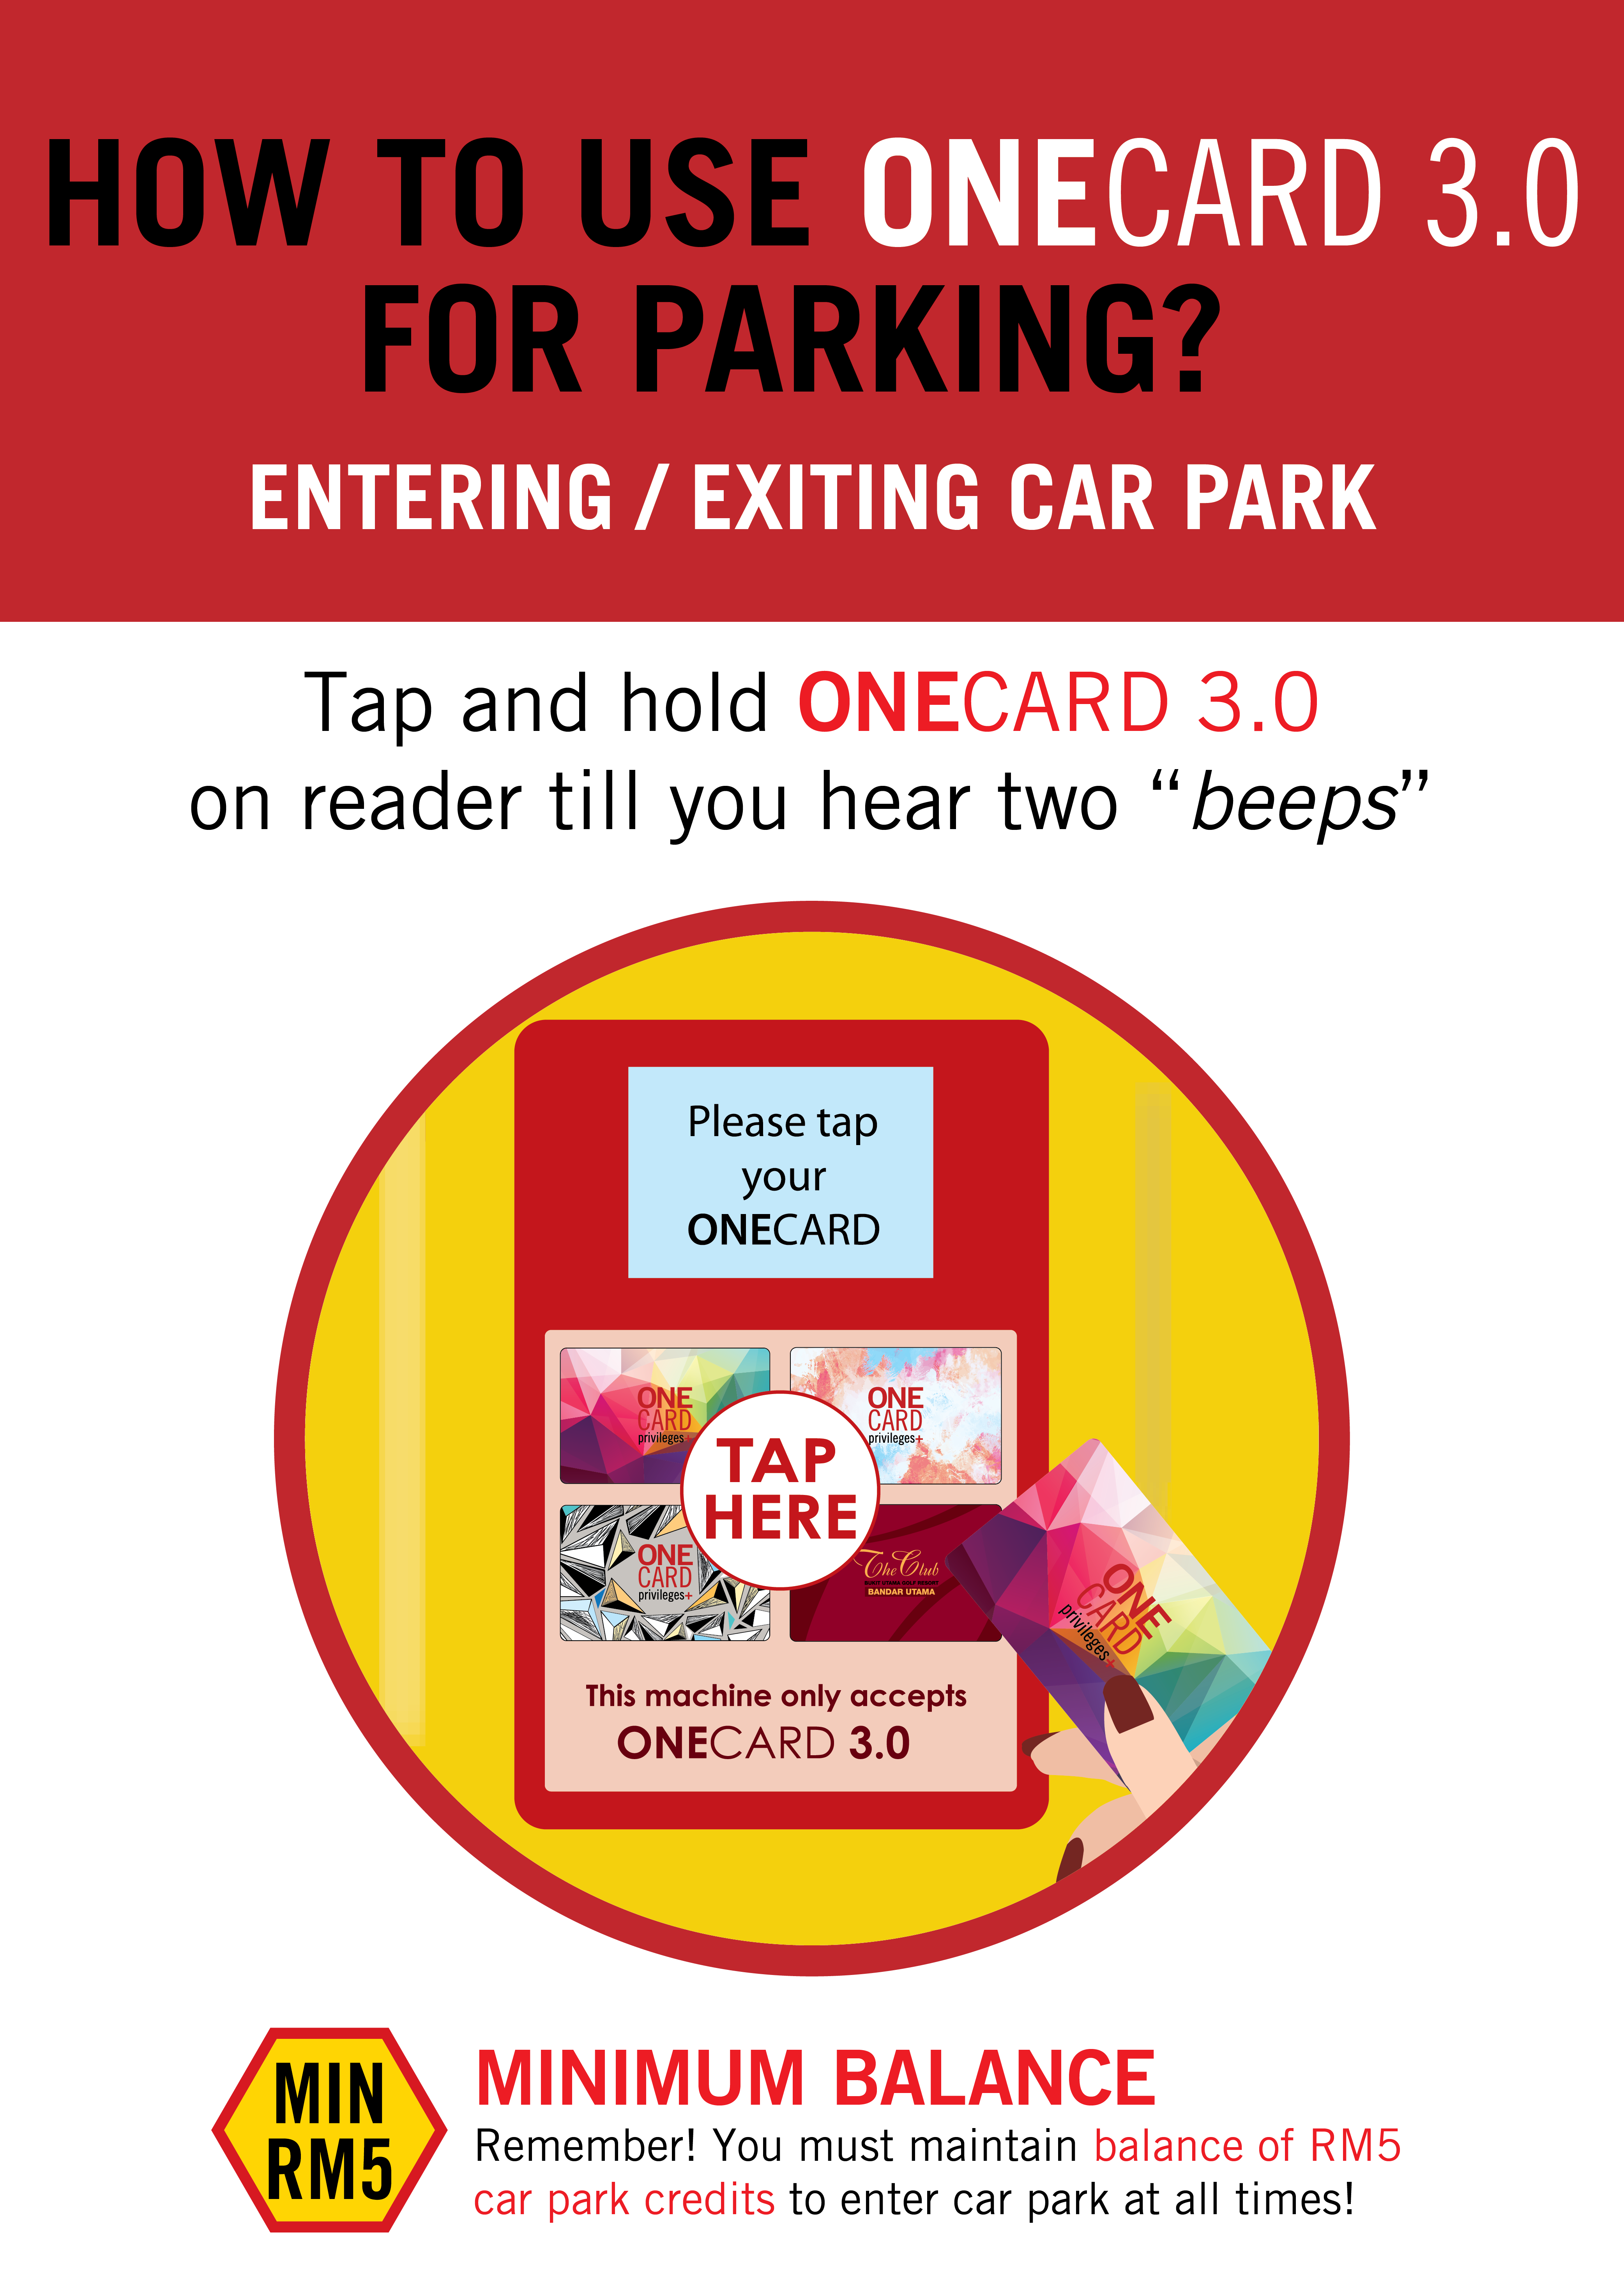 How to use ONECARD 3.0 for parking